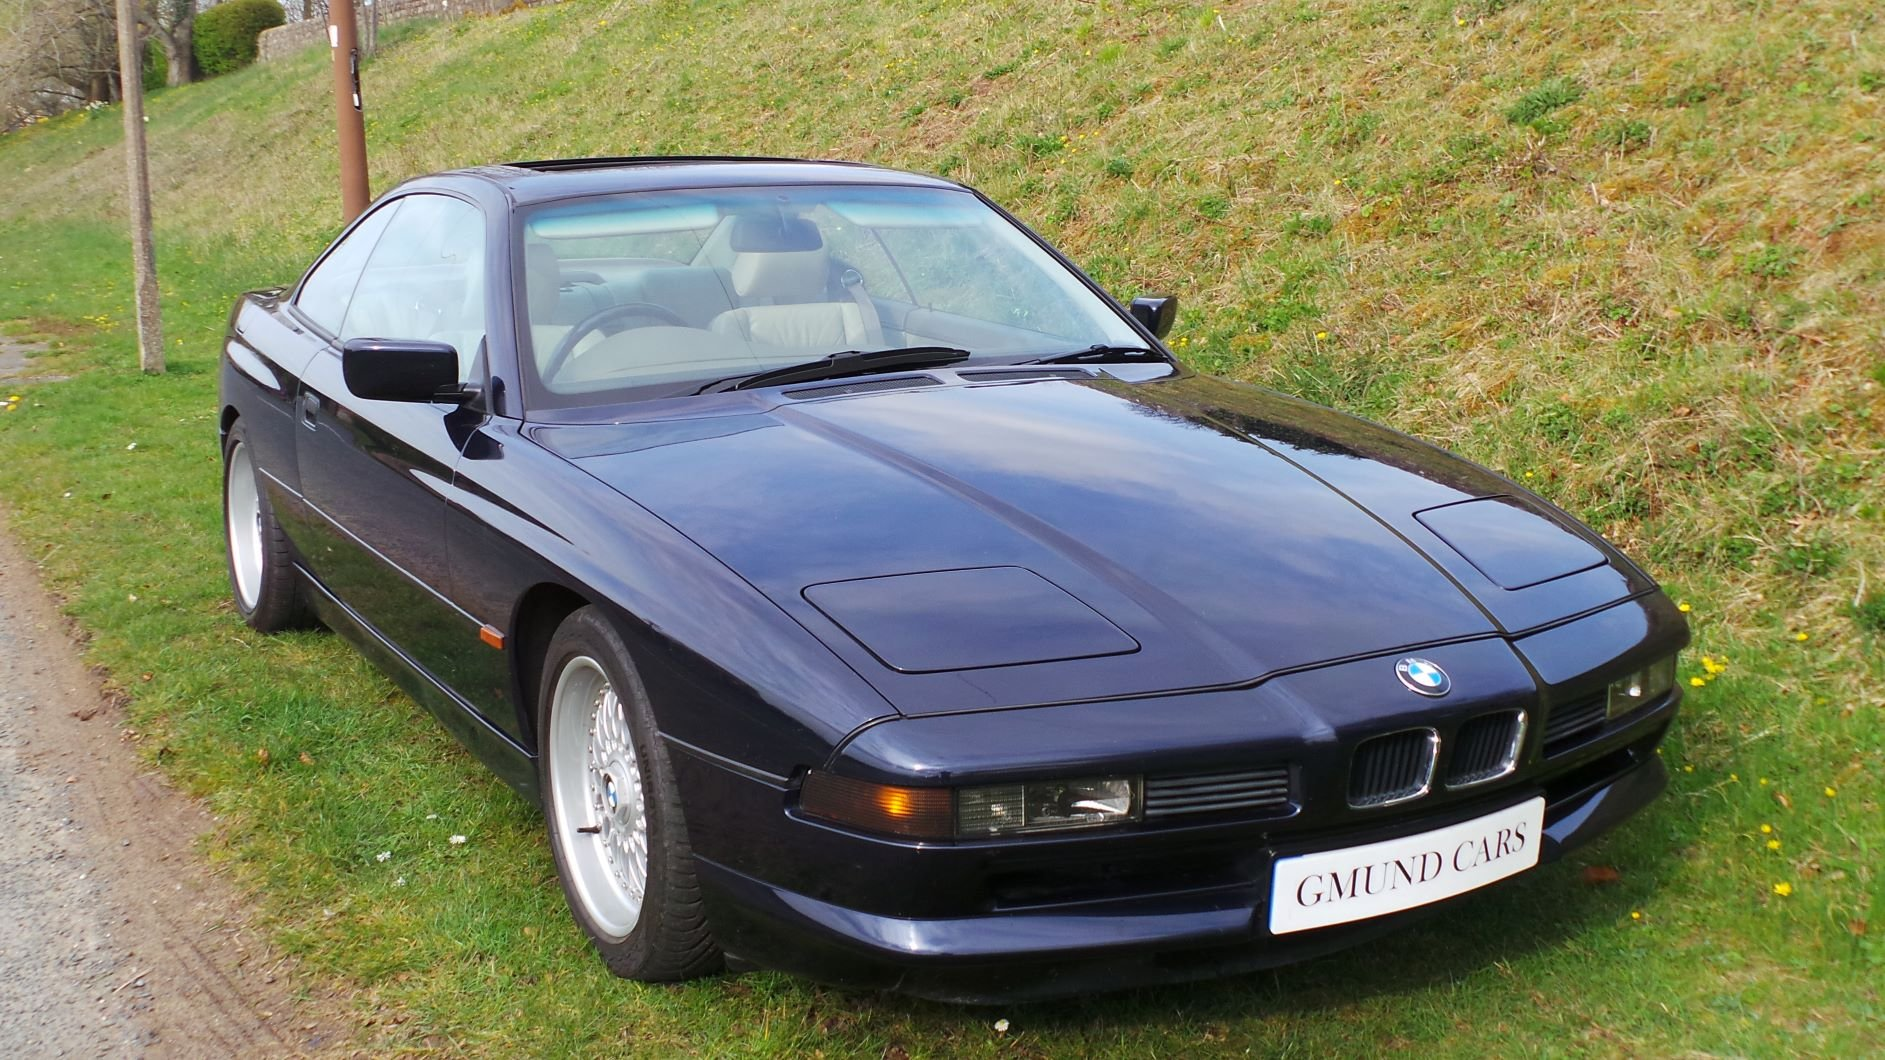 1996 BMW 840 CI Auto For Sale (picture 1 of 6)